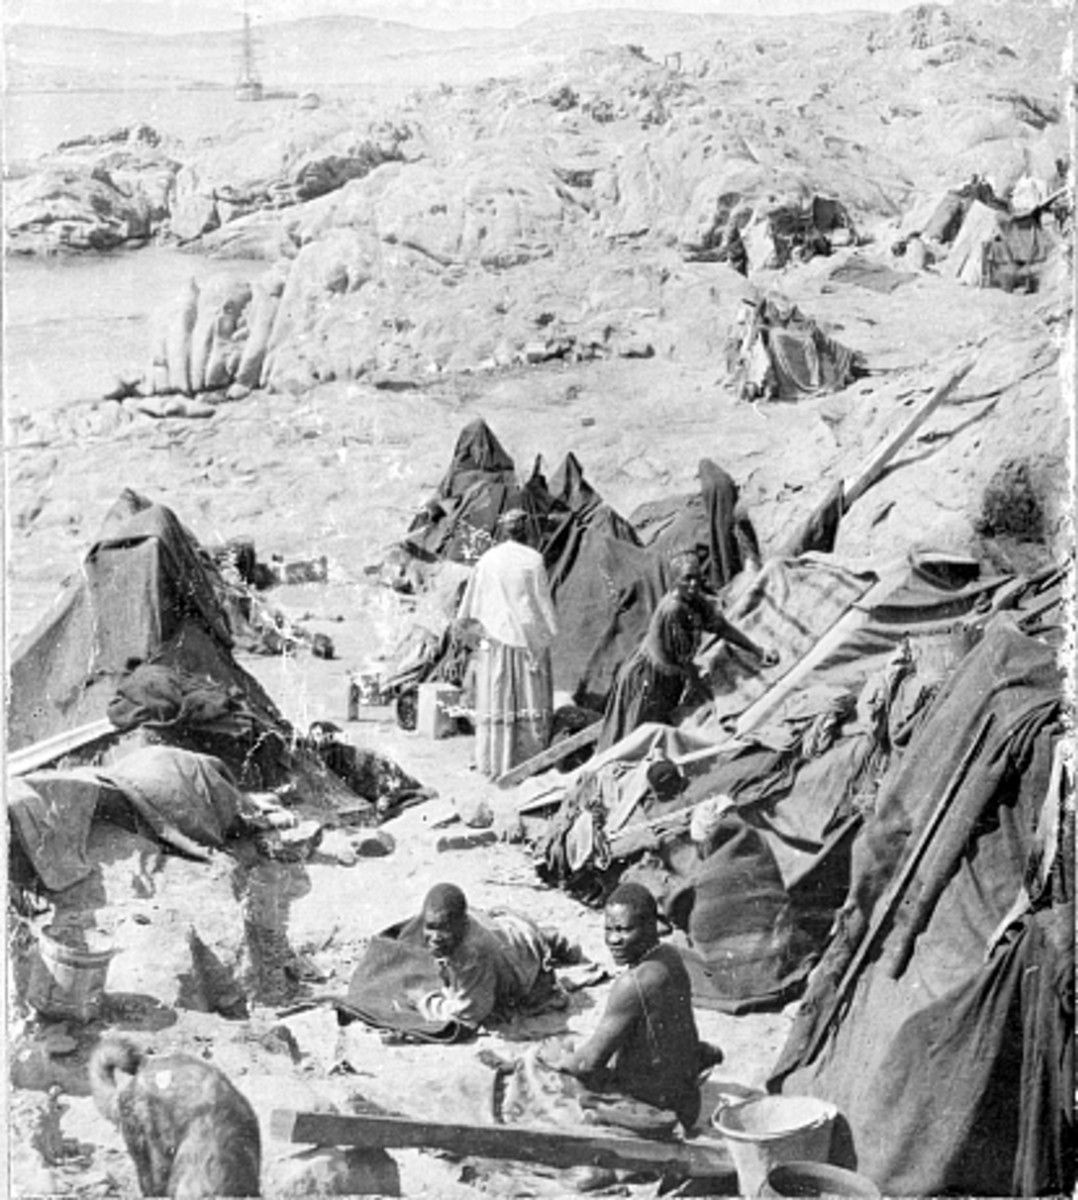 Over 150,000 native Africans died in German run concentration camps in what is now Namibia. According to the UN, it was the first genocide of the 20th century.